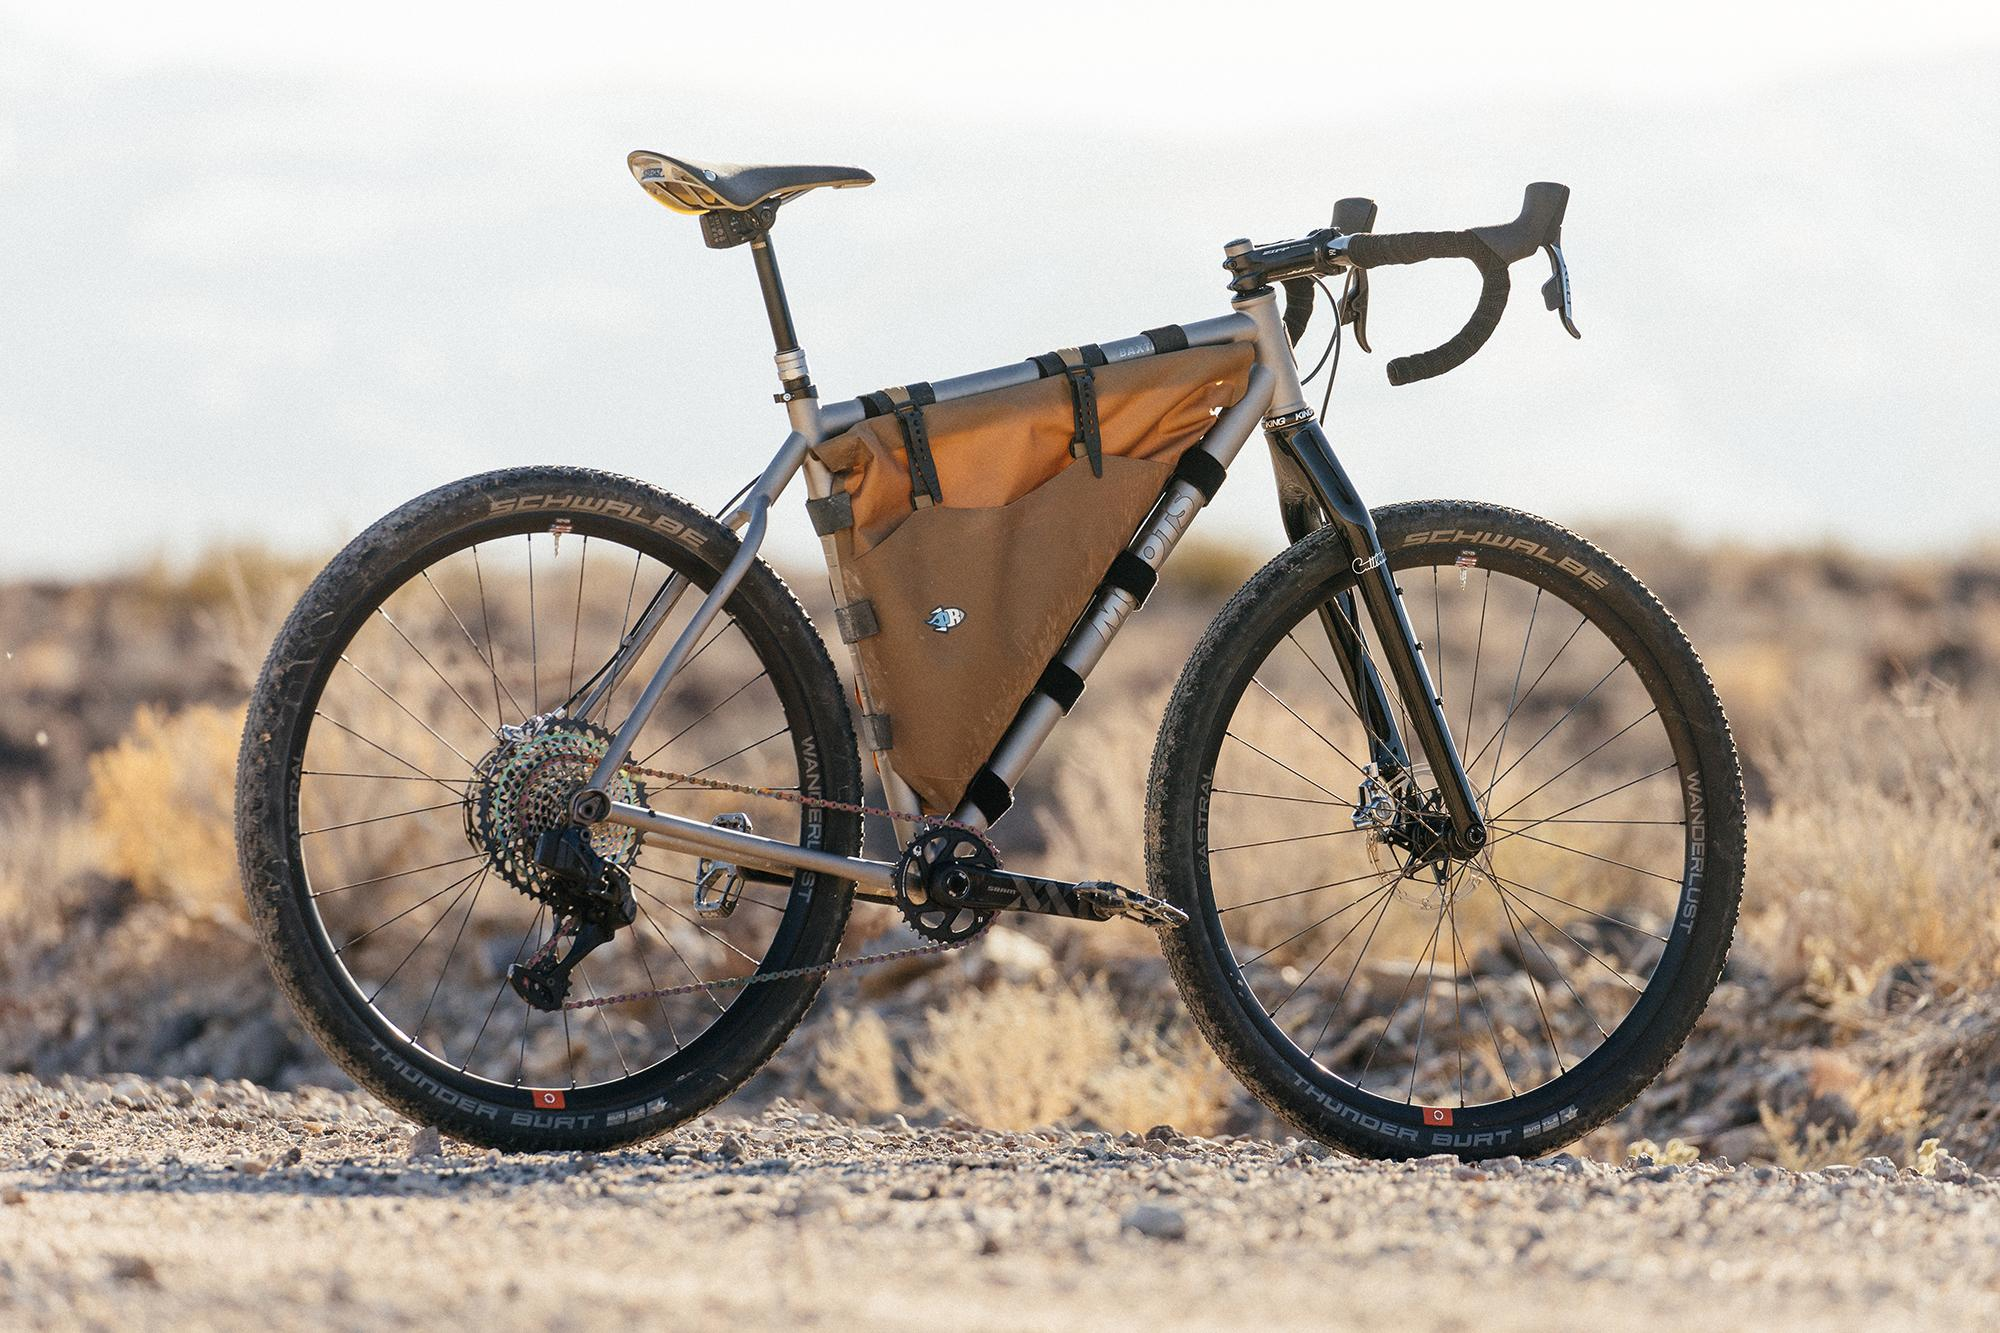 Disconnecting with a SRAM AXS Equipped Moots Baxter – John